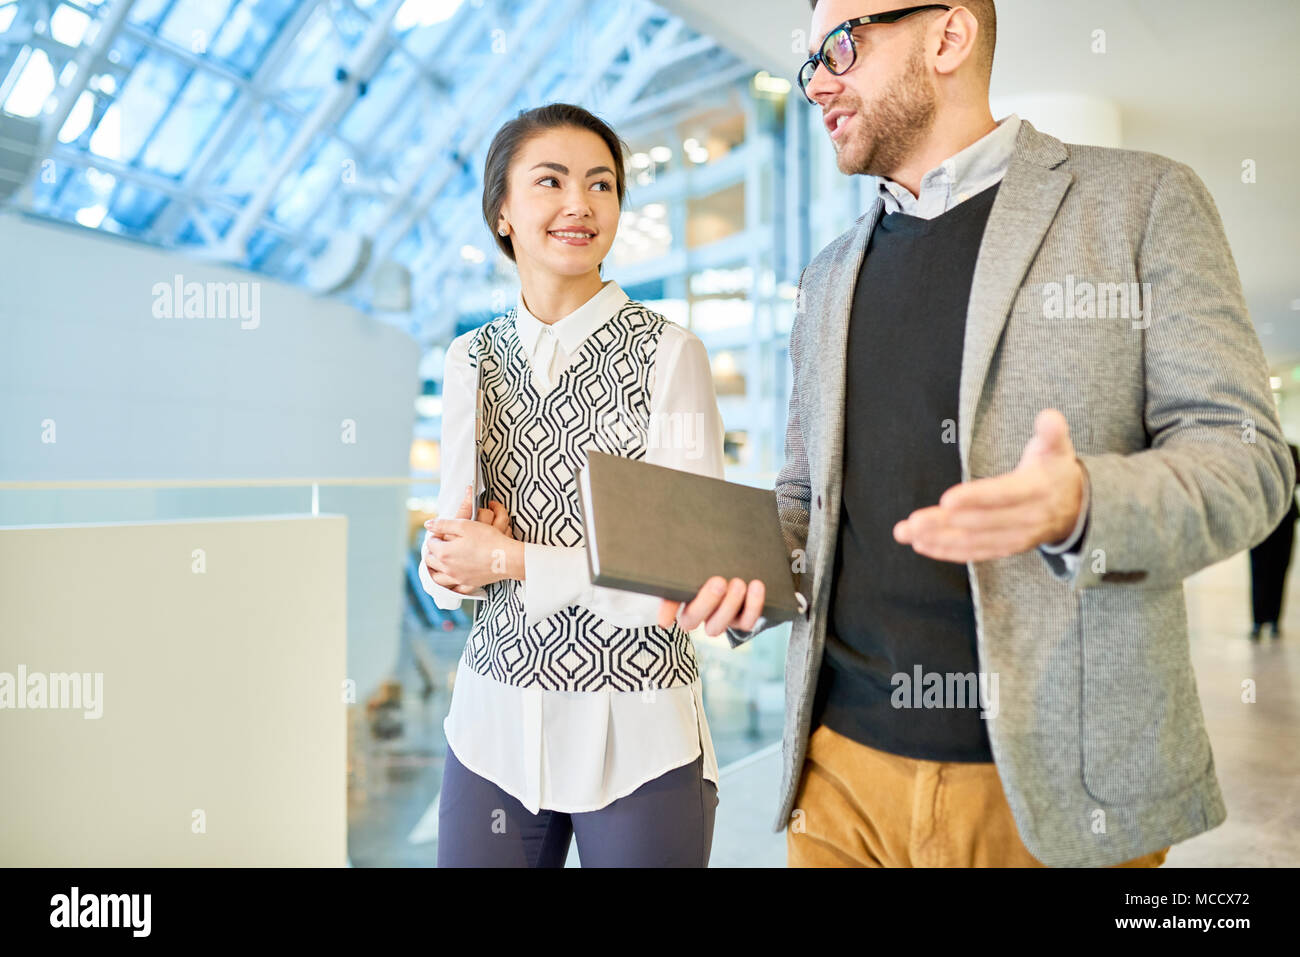 Explaining Something to Subordinate Stock Photo